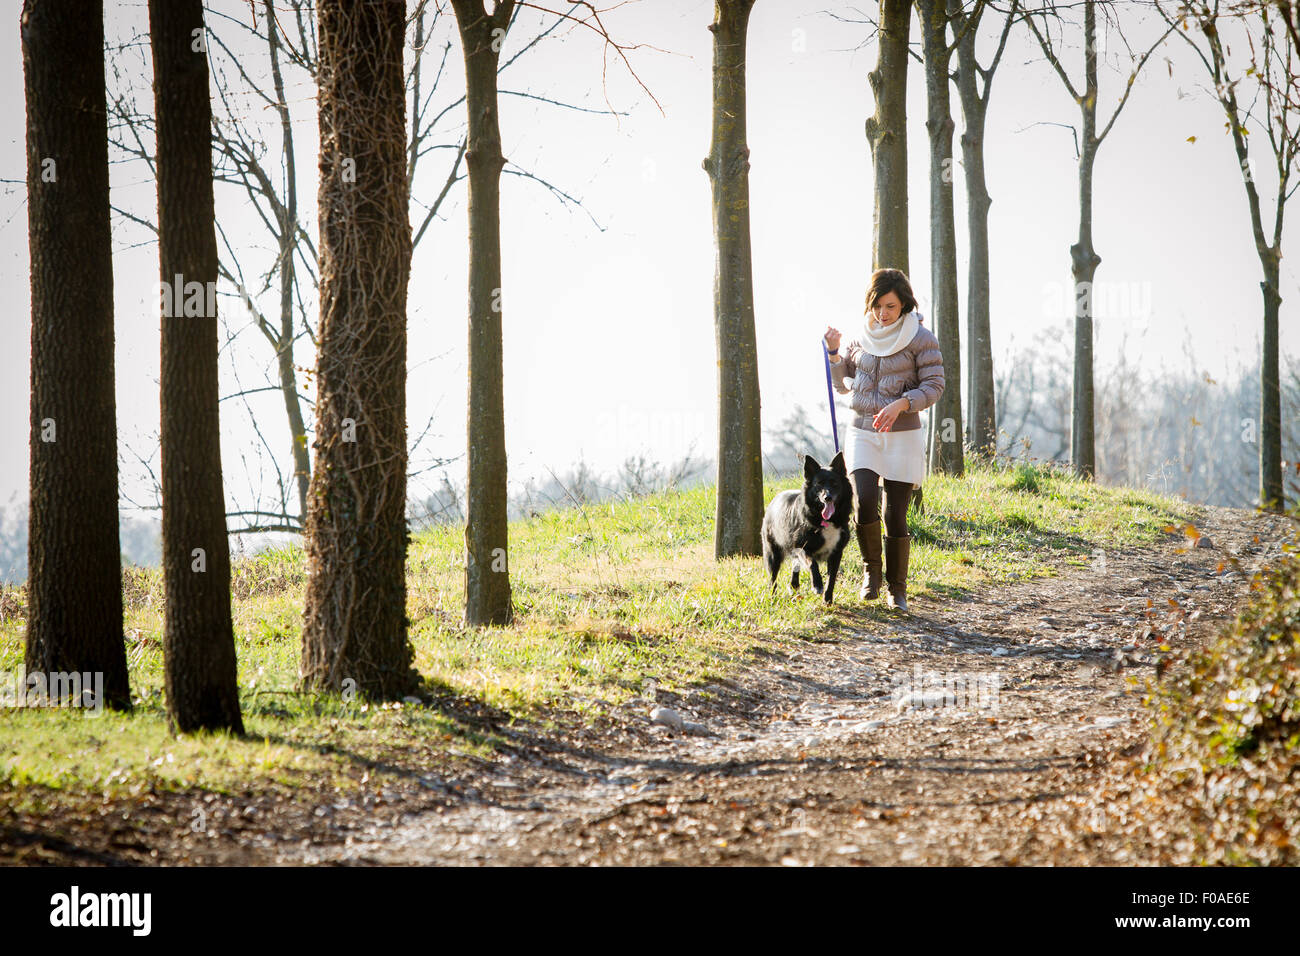 Mid adult woman walking her dog on dirt path - Stock Image